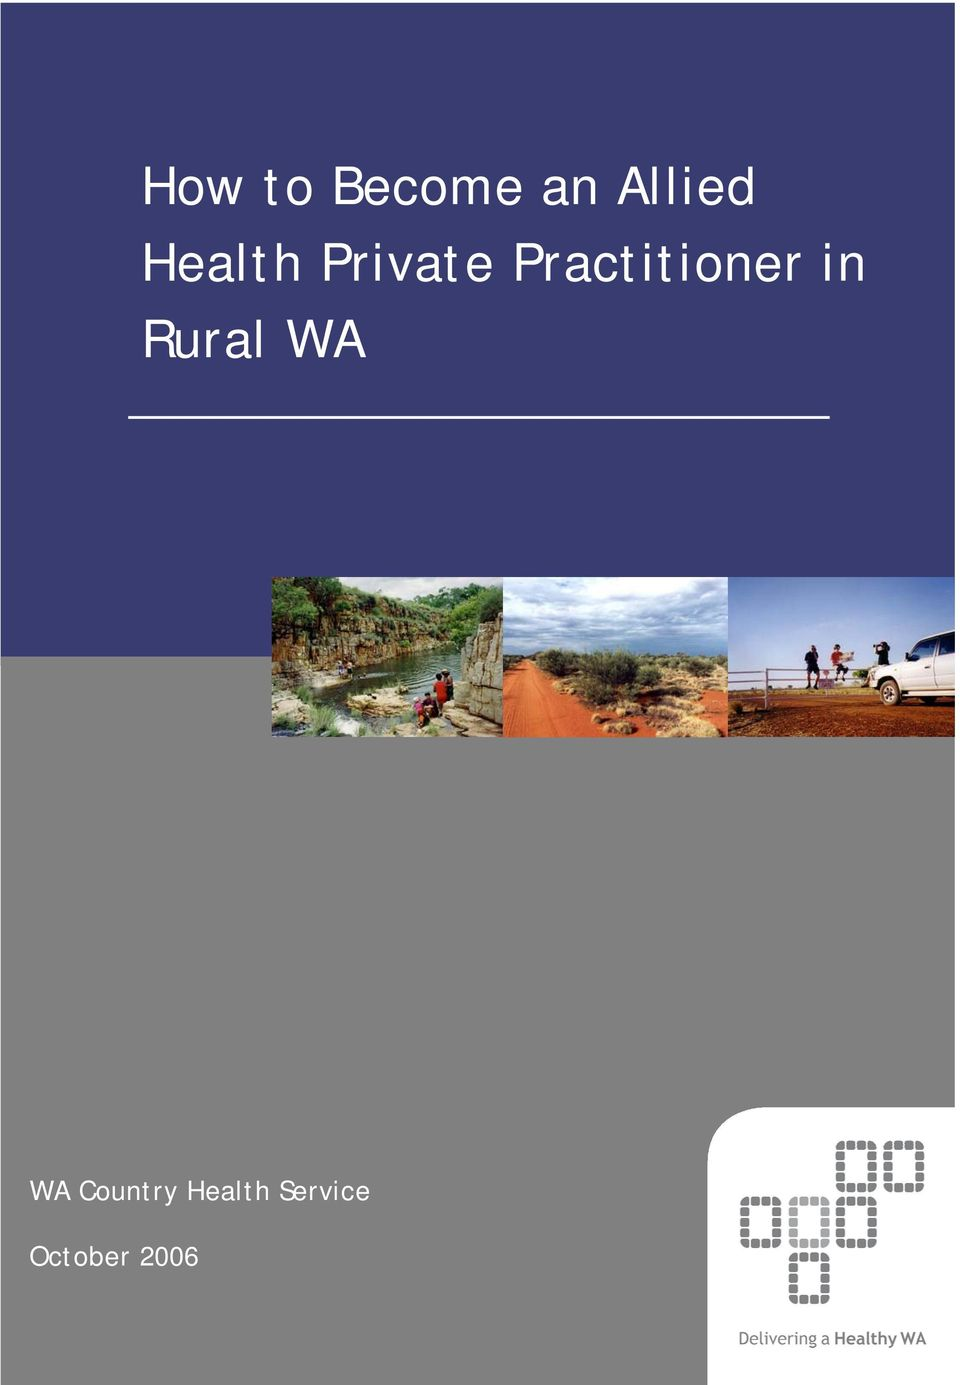 Practitioner in Rural WA